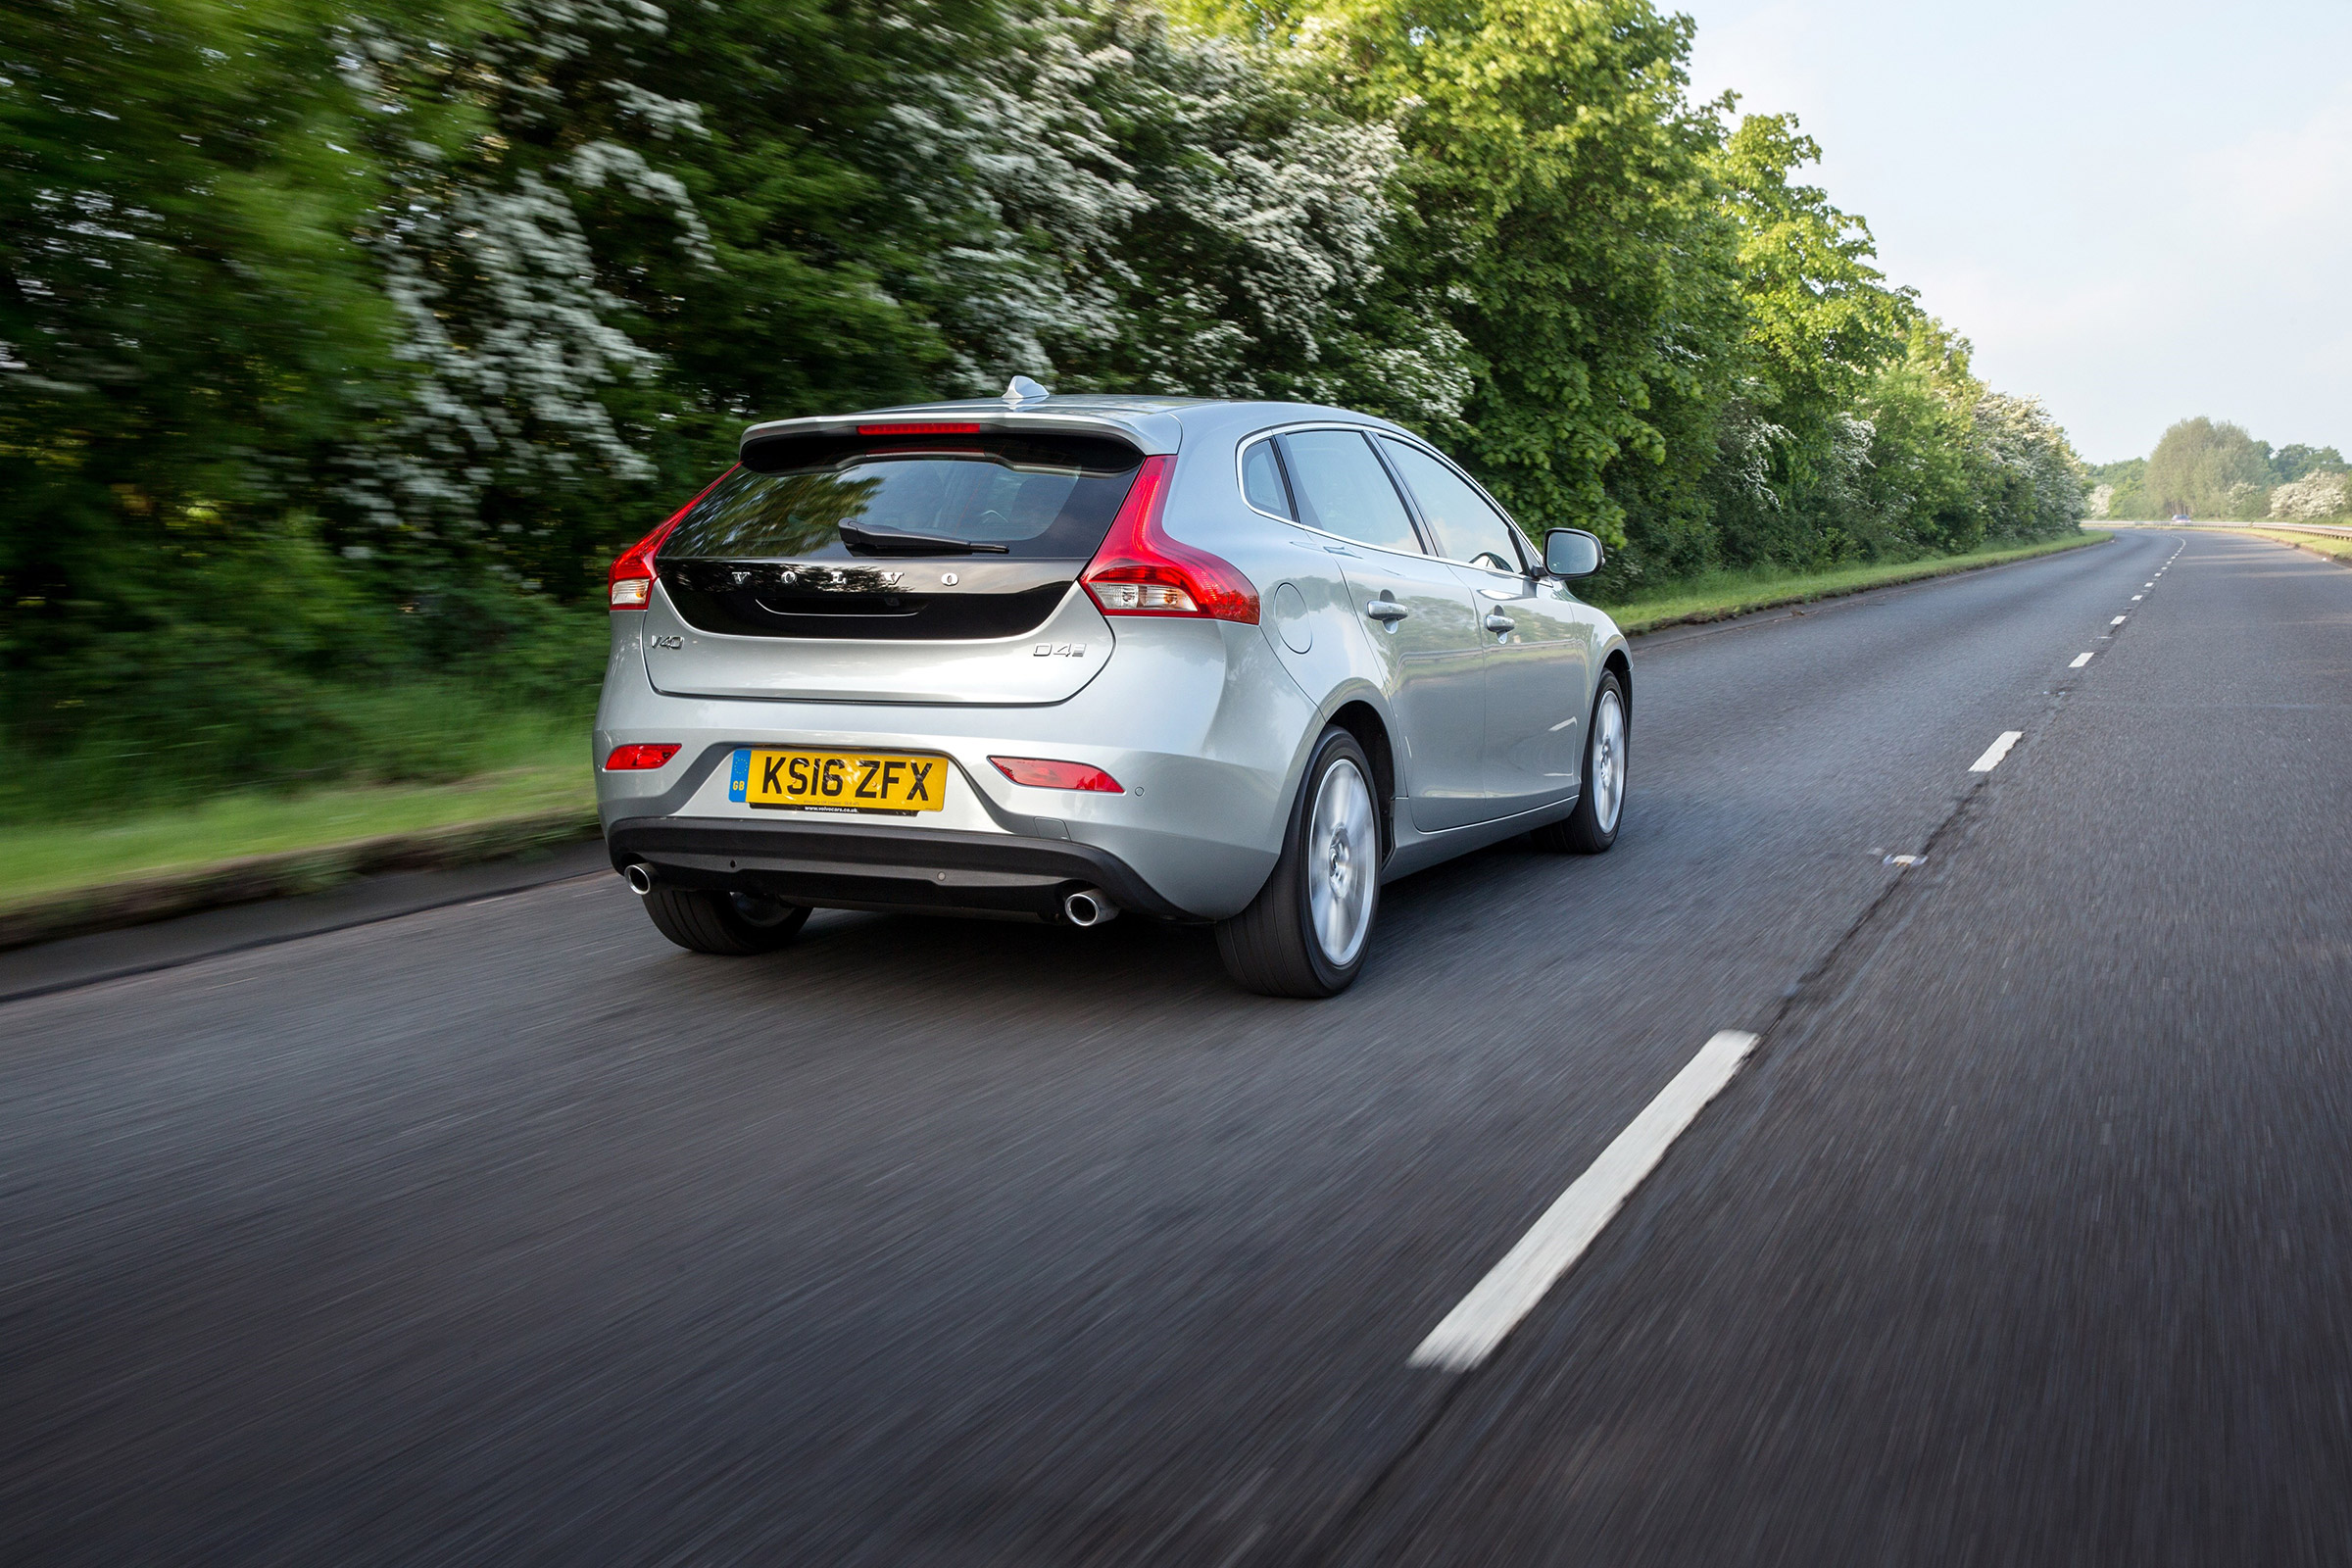 Volvo V40 performance and 0-60 time | Evo